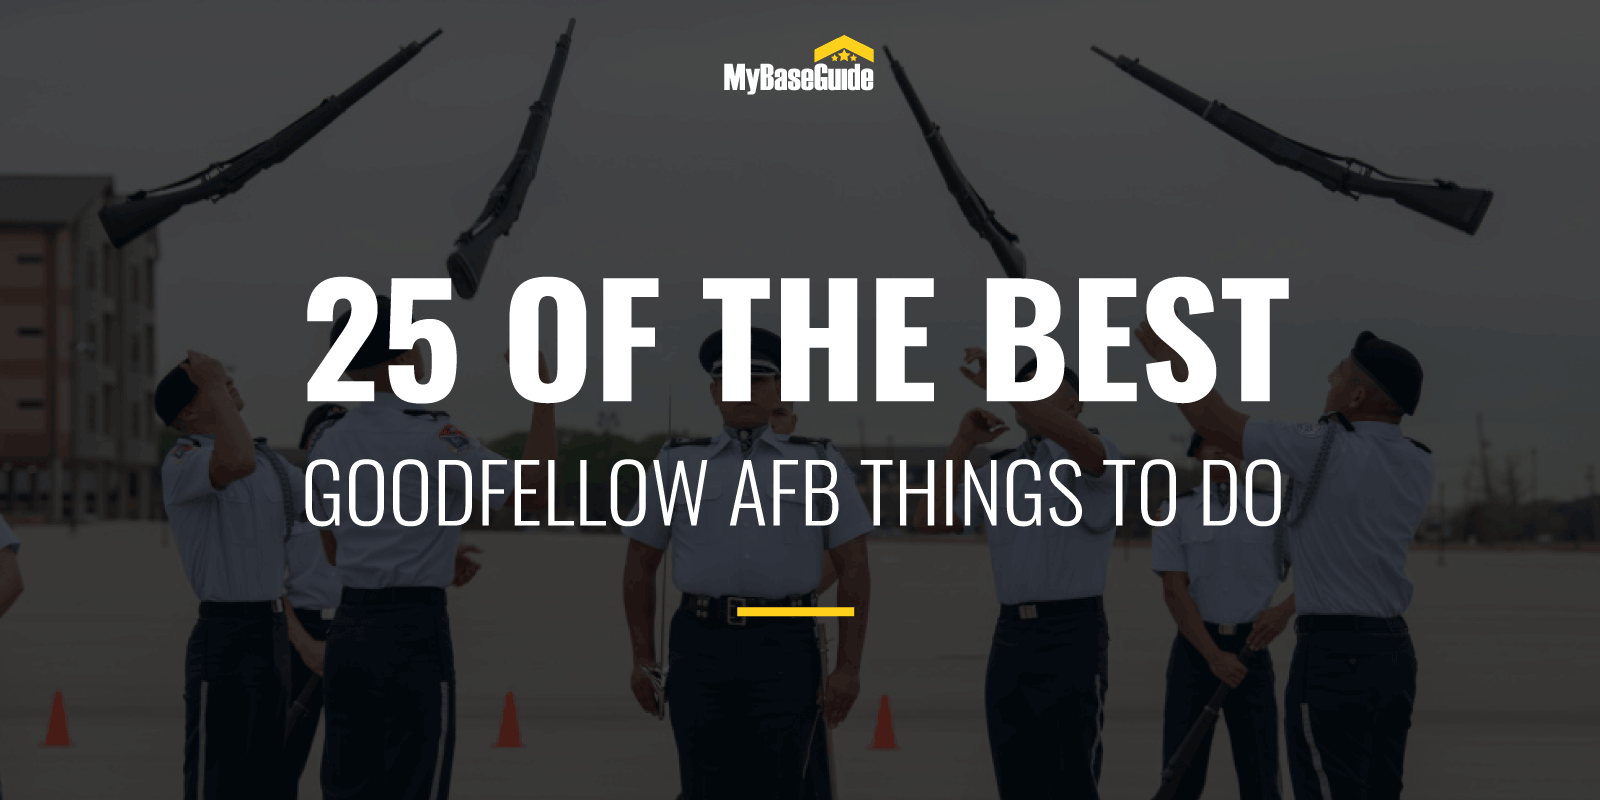 25 Of the Best Goodfellow AFB Things to Do